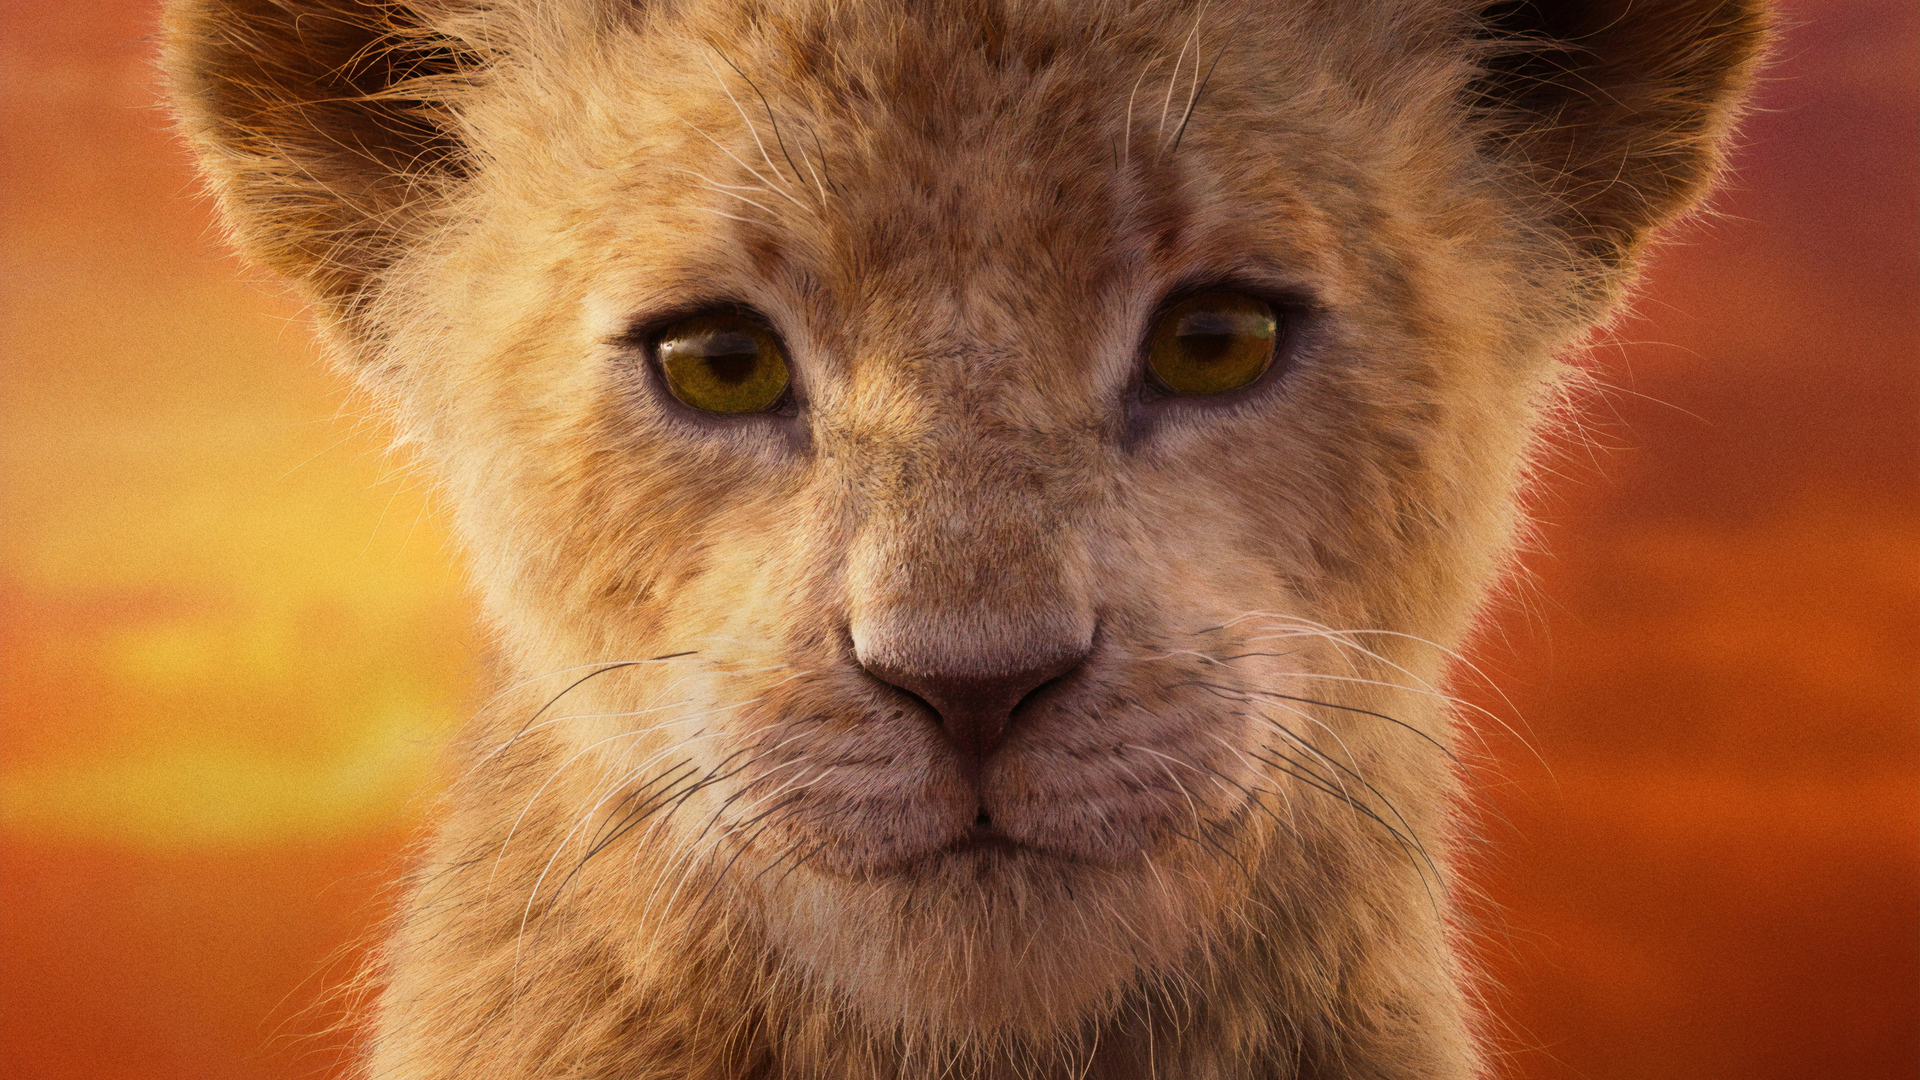 Simba The Lion King Wallpapers Details About The New Lion King Movie Mega Themes